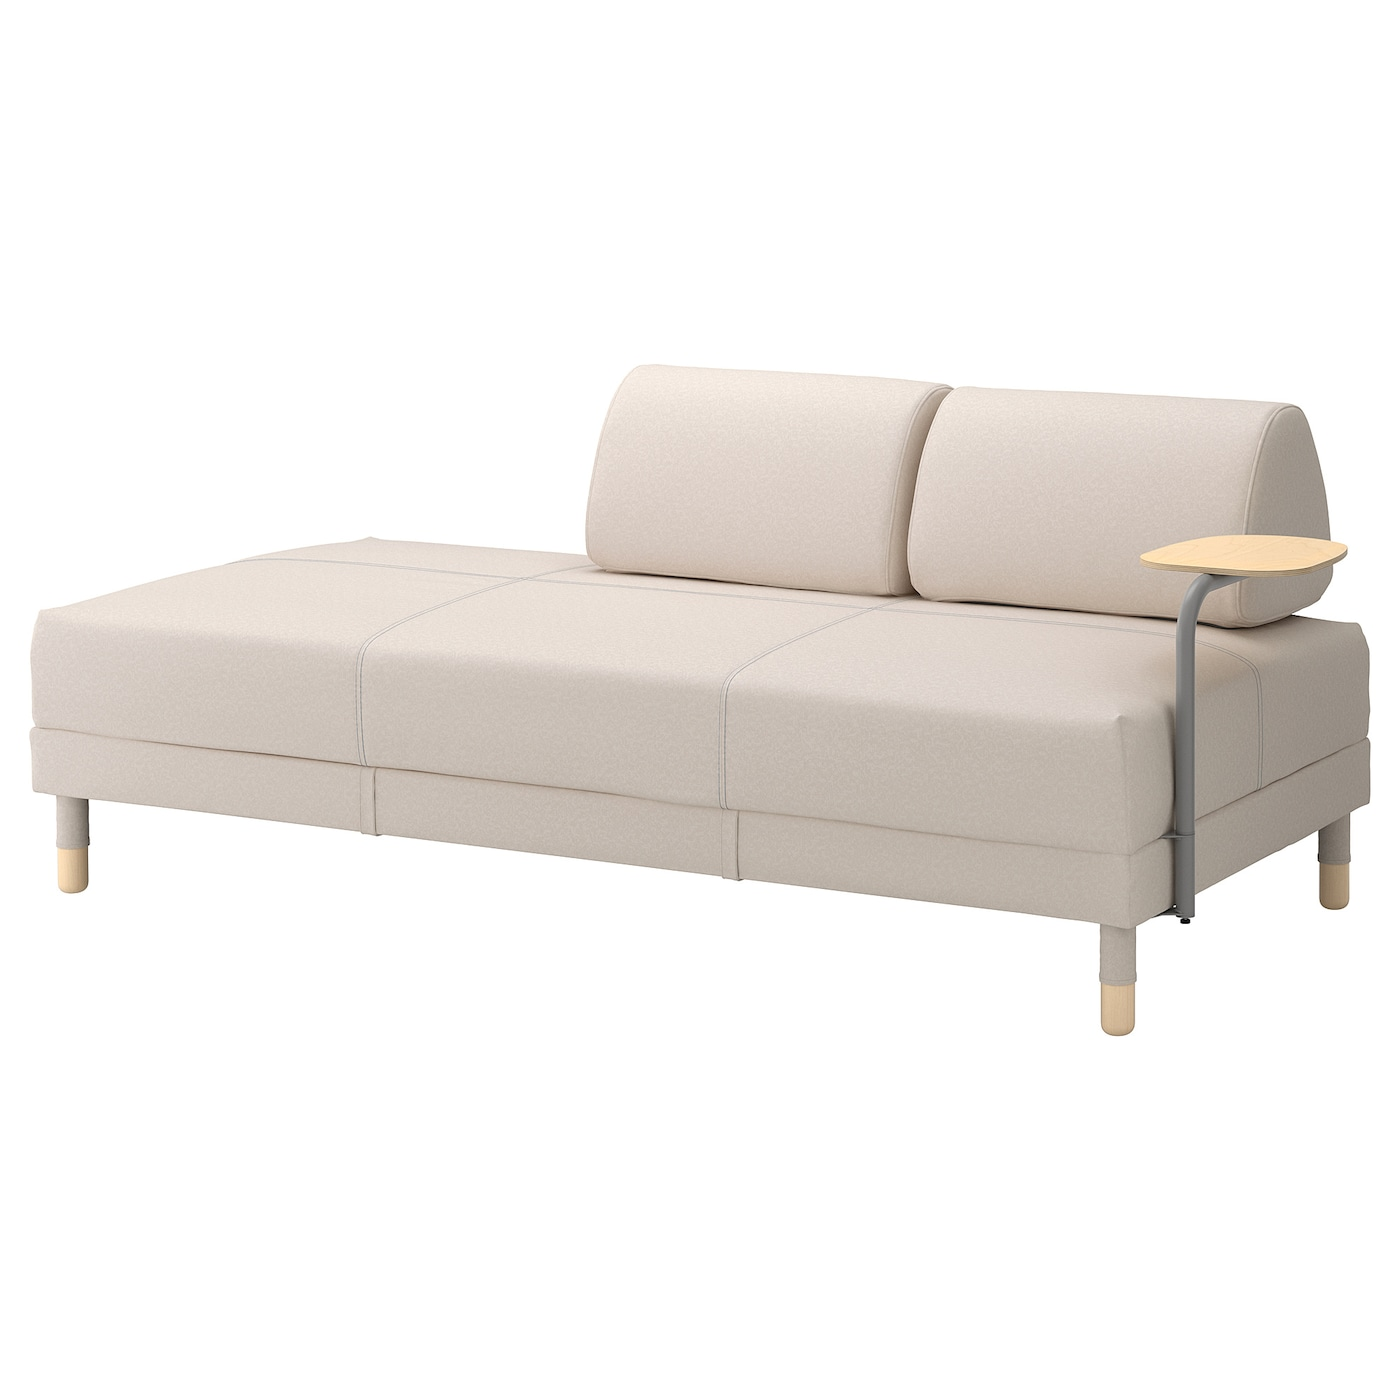 Lugnvik sofa bed with chaise gran n black review refil sofa for Table chaise ikea